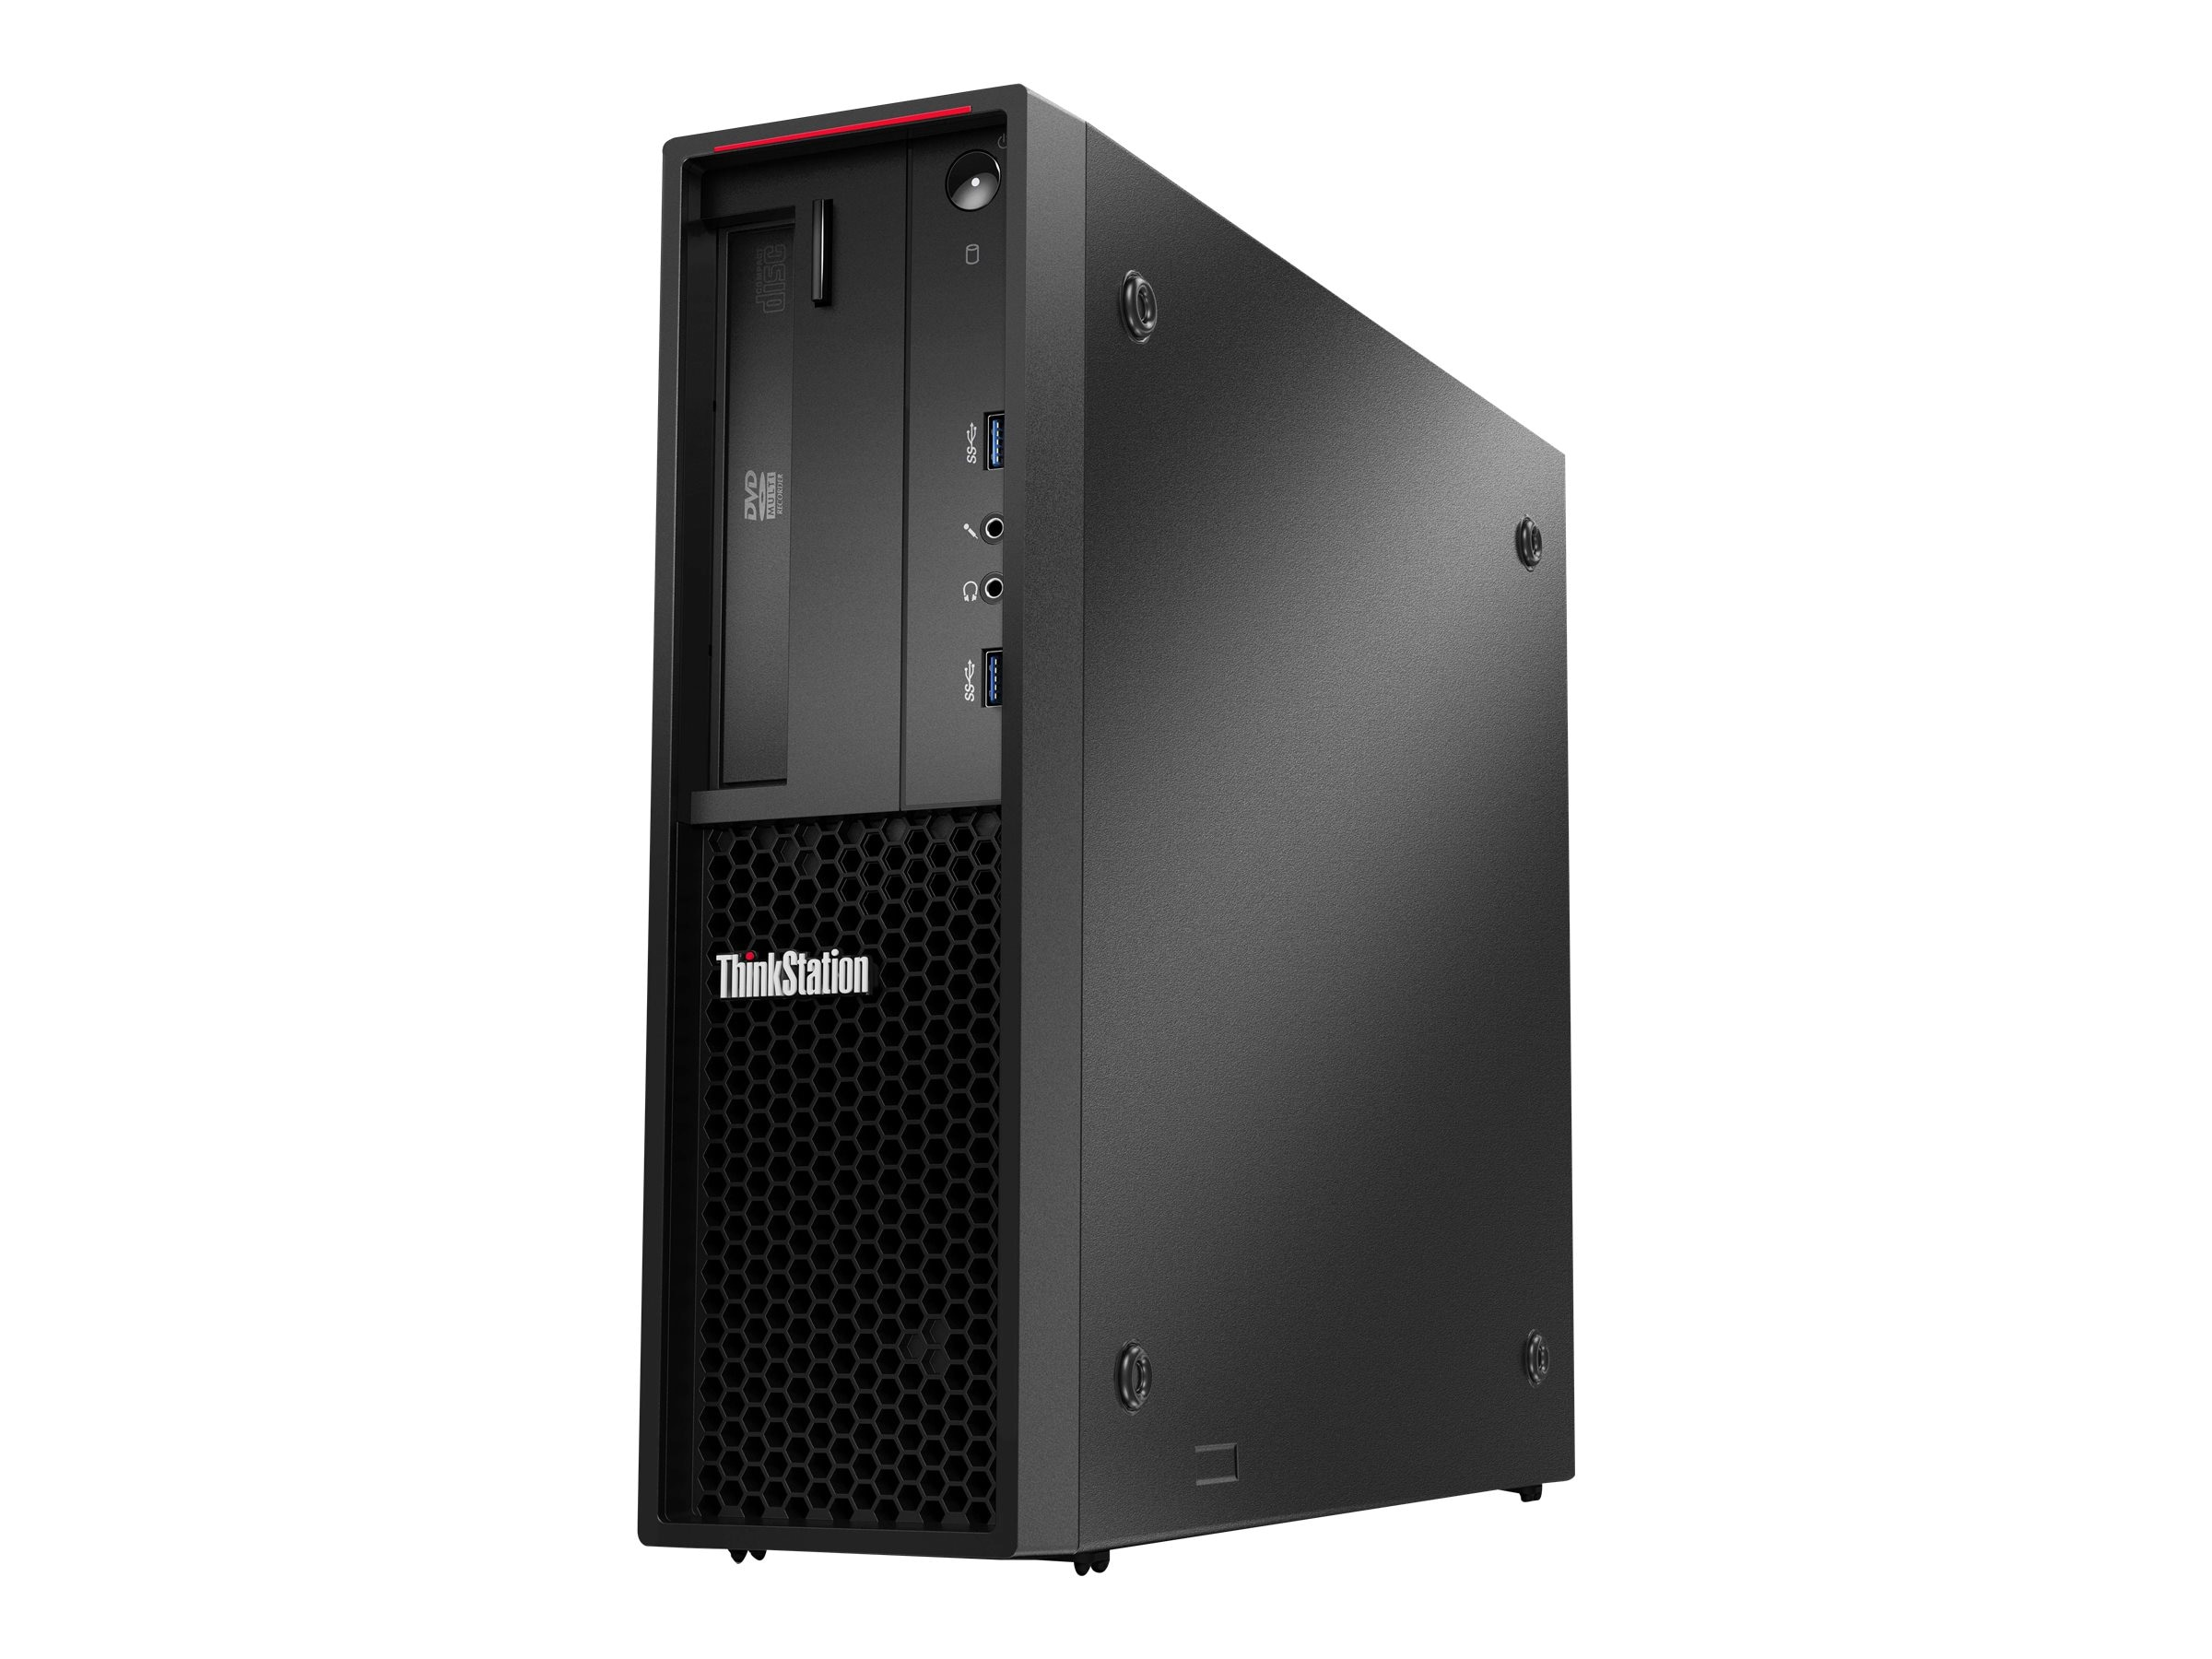 Lenovo TopSeller ThinkStation P310 3.5GHz Xeon Microsoft Windows 7 Professional 64-bit Edition   Windows 10 Pro, 30AV000DUS, 30898931, Workstations